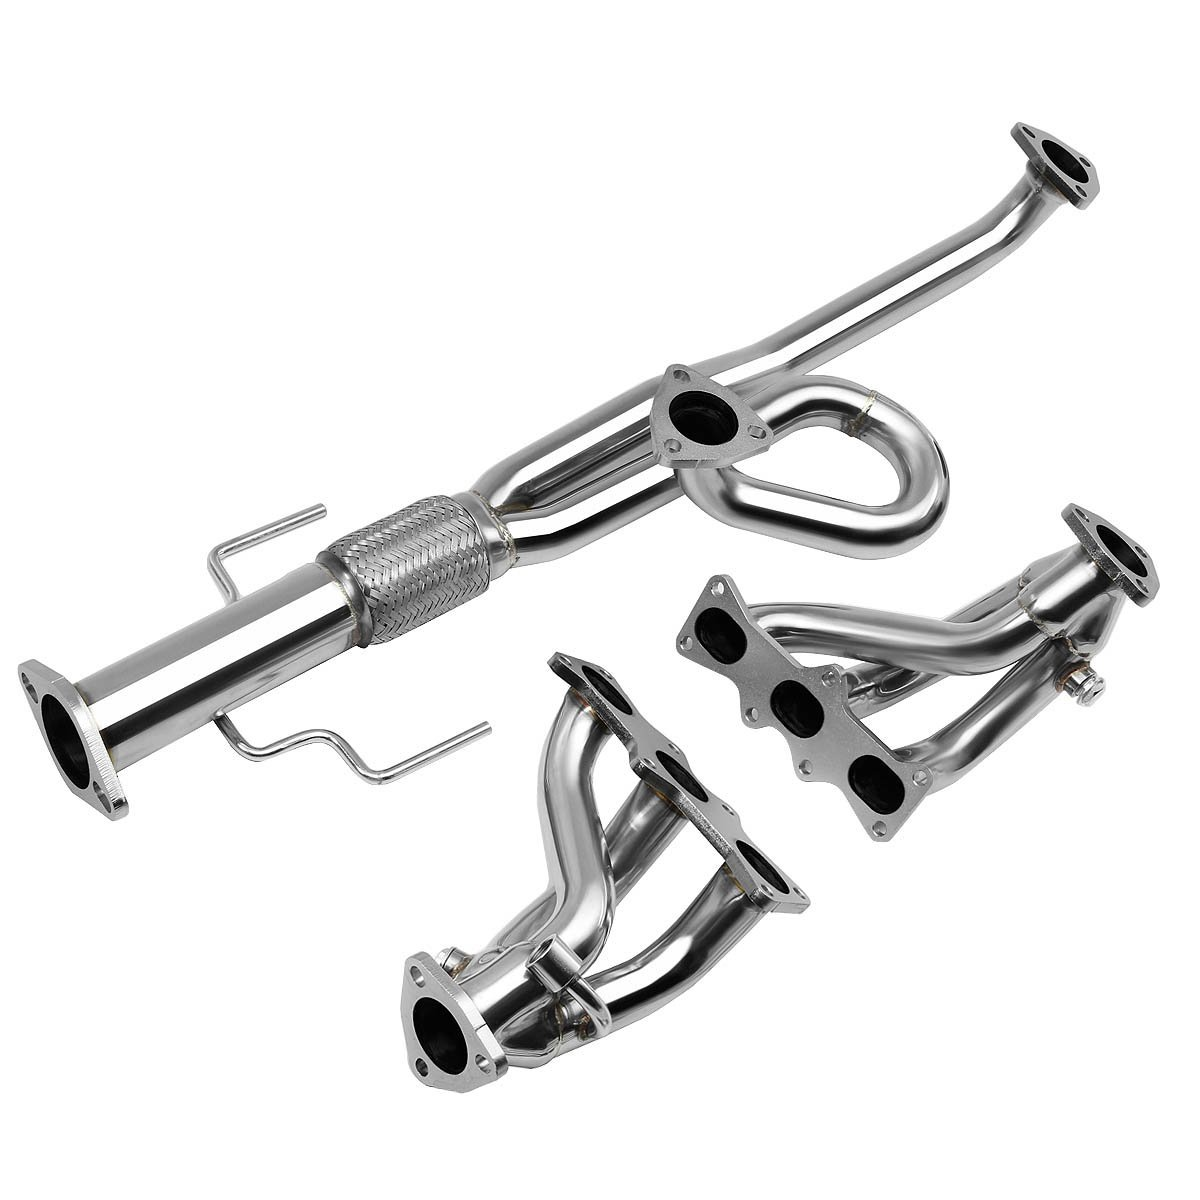 93-97 Ford Probe / Mazda Mx6 Mx-6 6-2-1 Stainless Racing